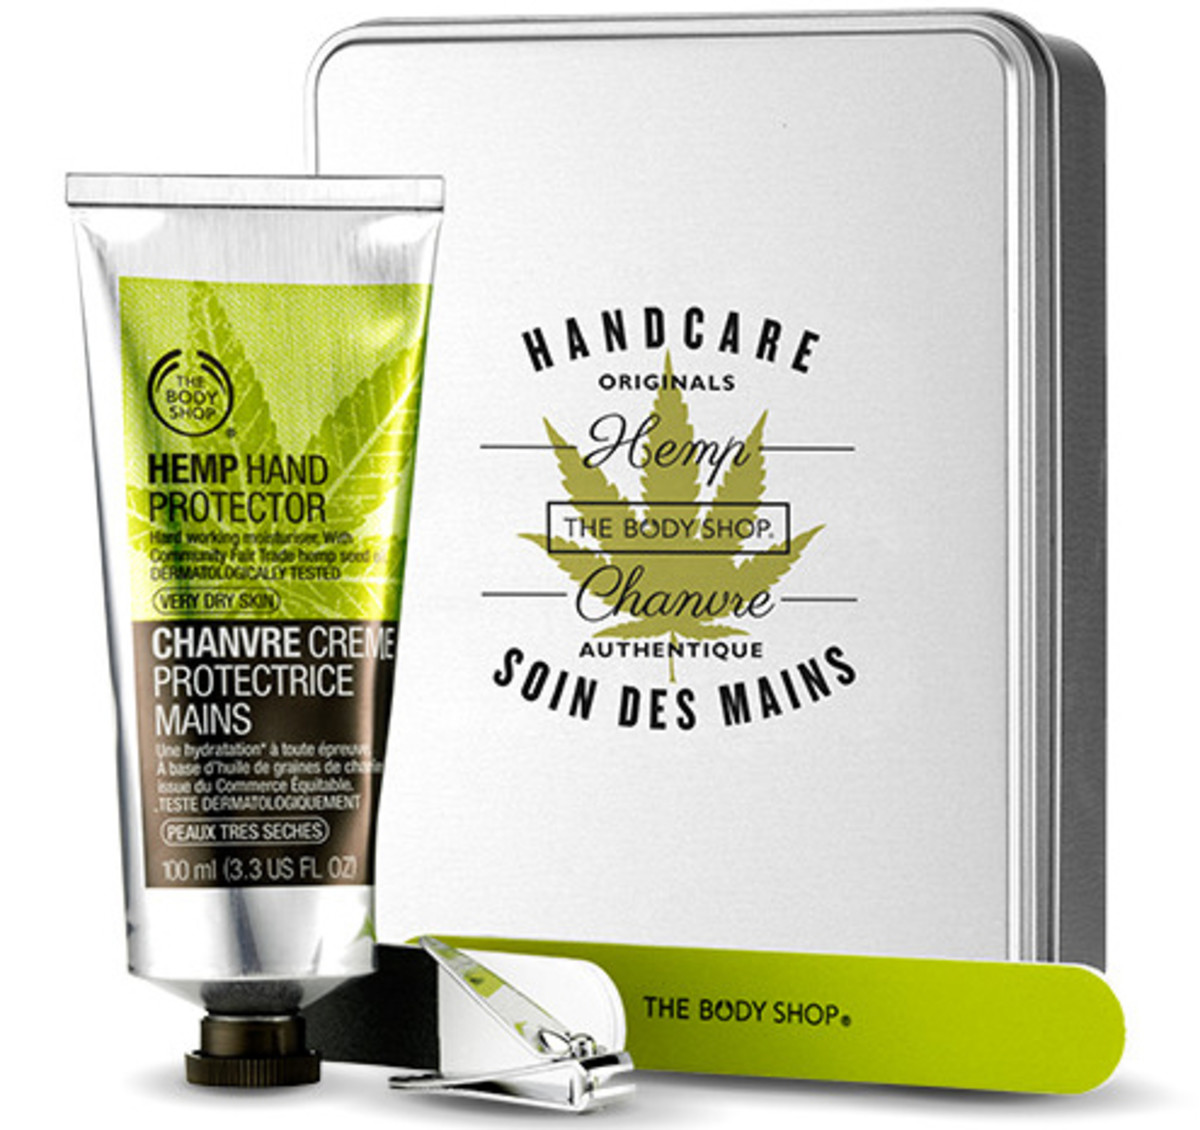 Hand Cream Gift Guide_The Body Shop Hemp Handy Manicure Nail Gift Set